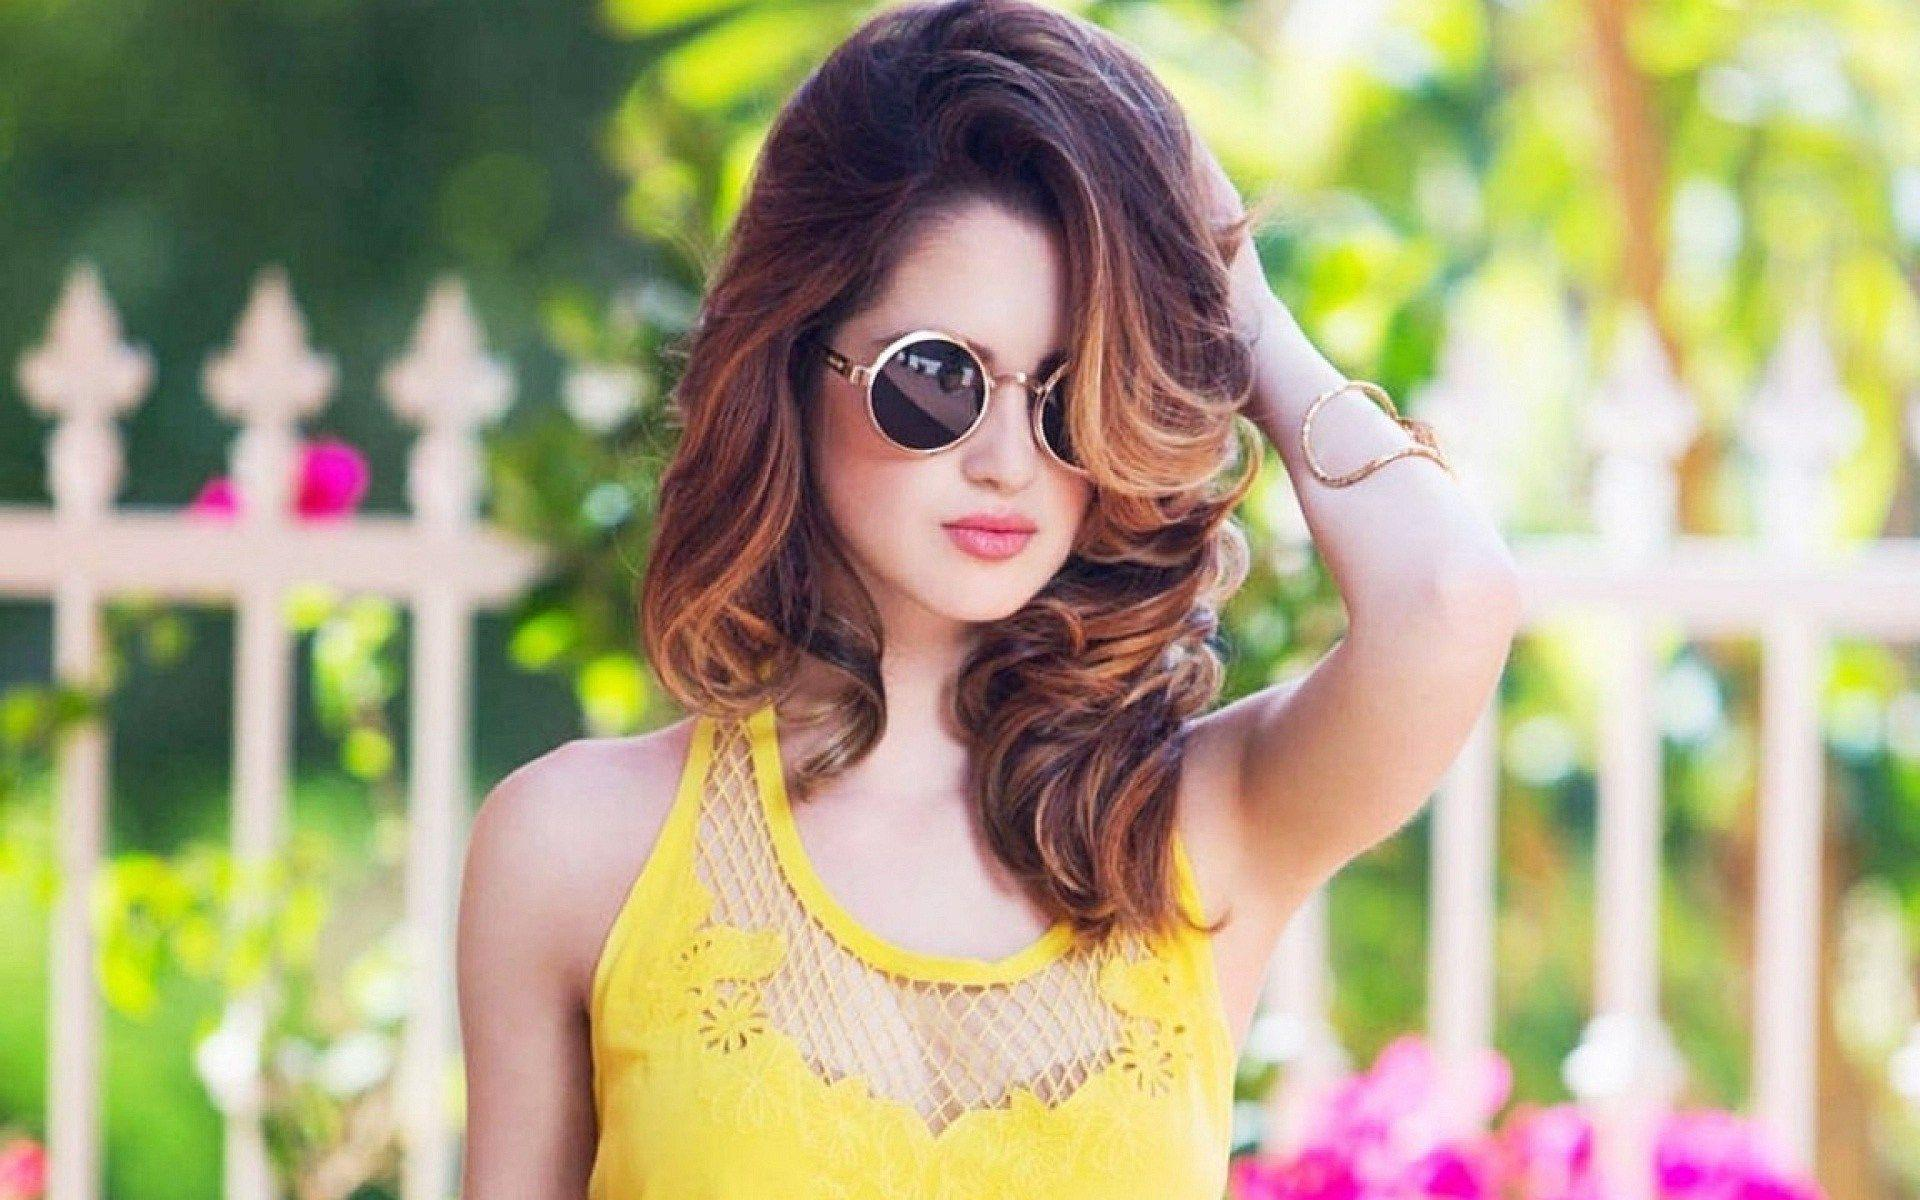 Stylish Girls Wallpapers Wallpaper Cave